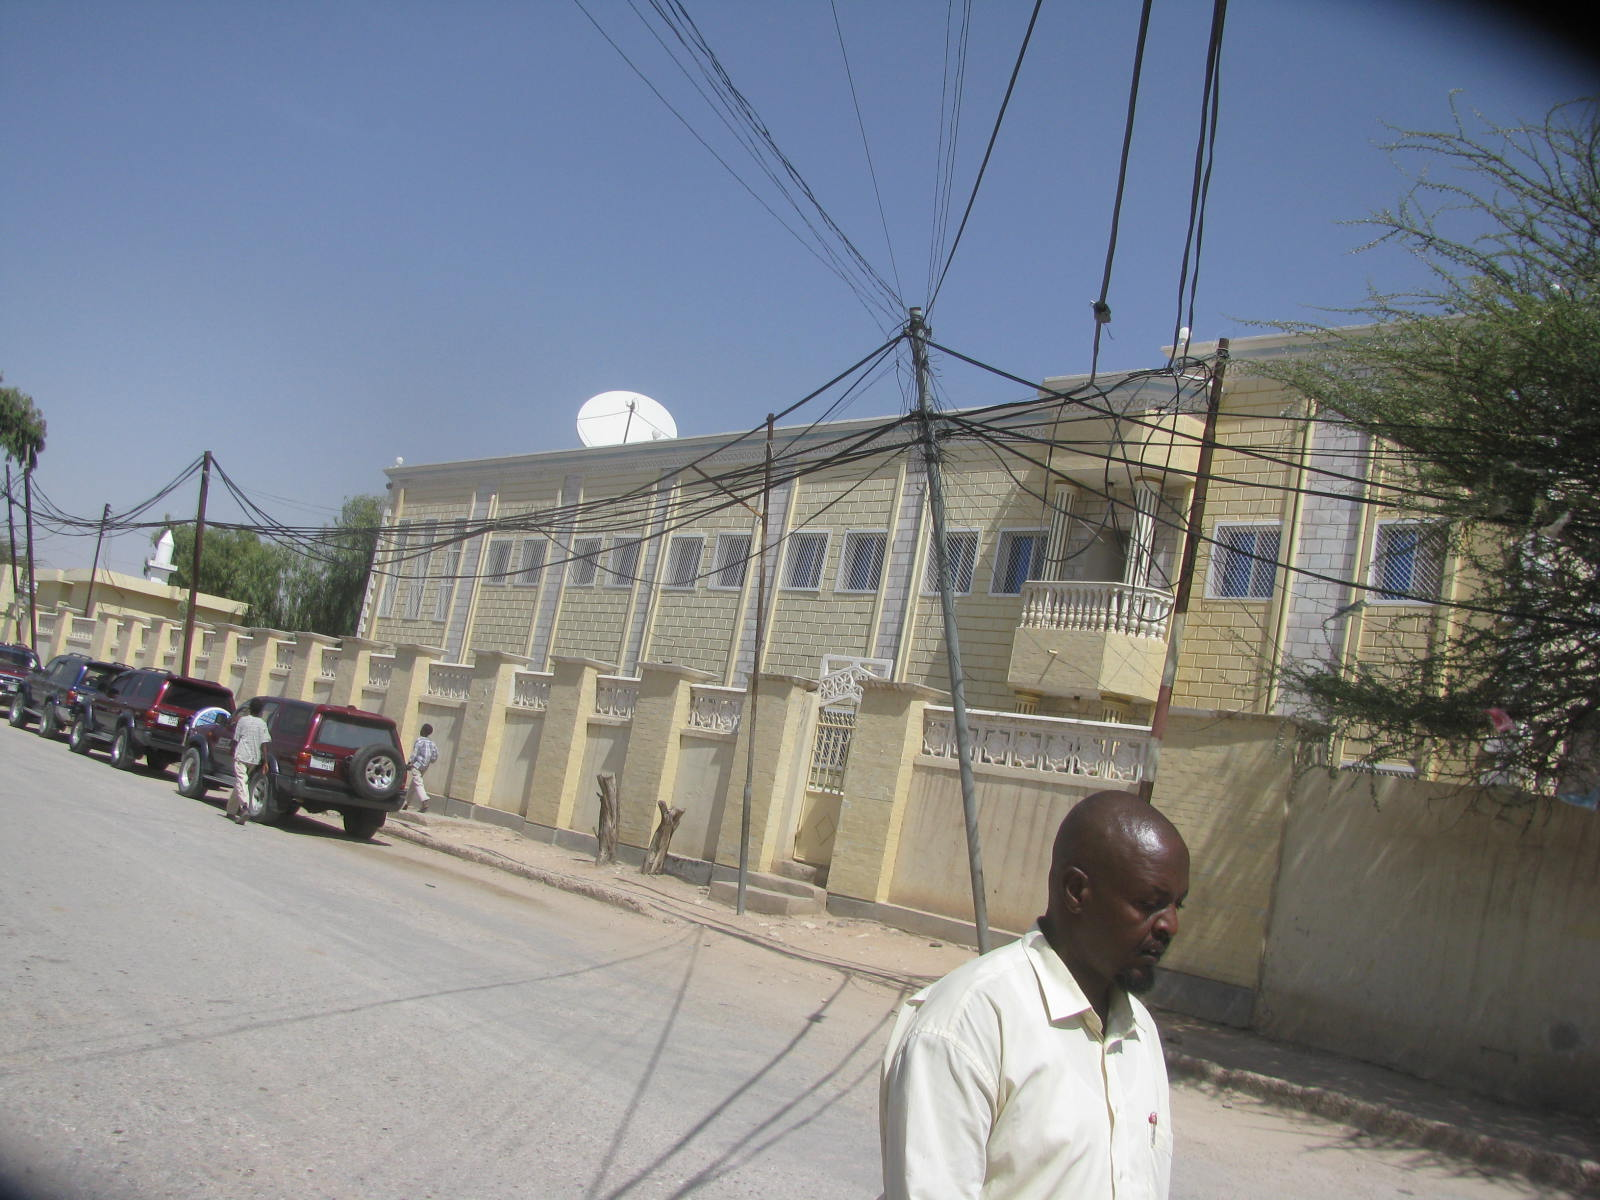 A Street in Hargeisa, capital of the secessionist territory of Somaliland